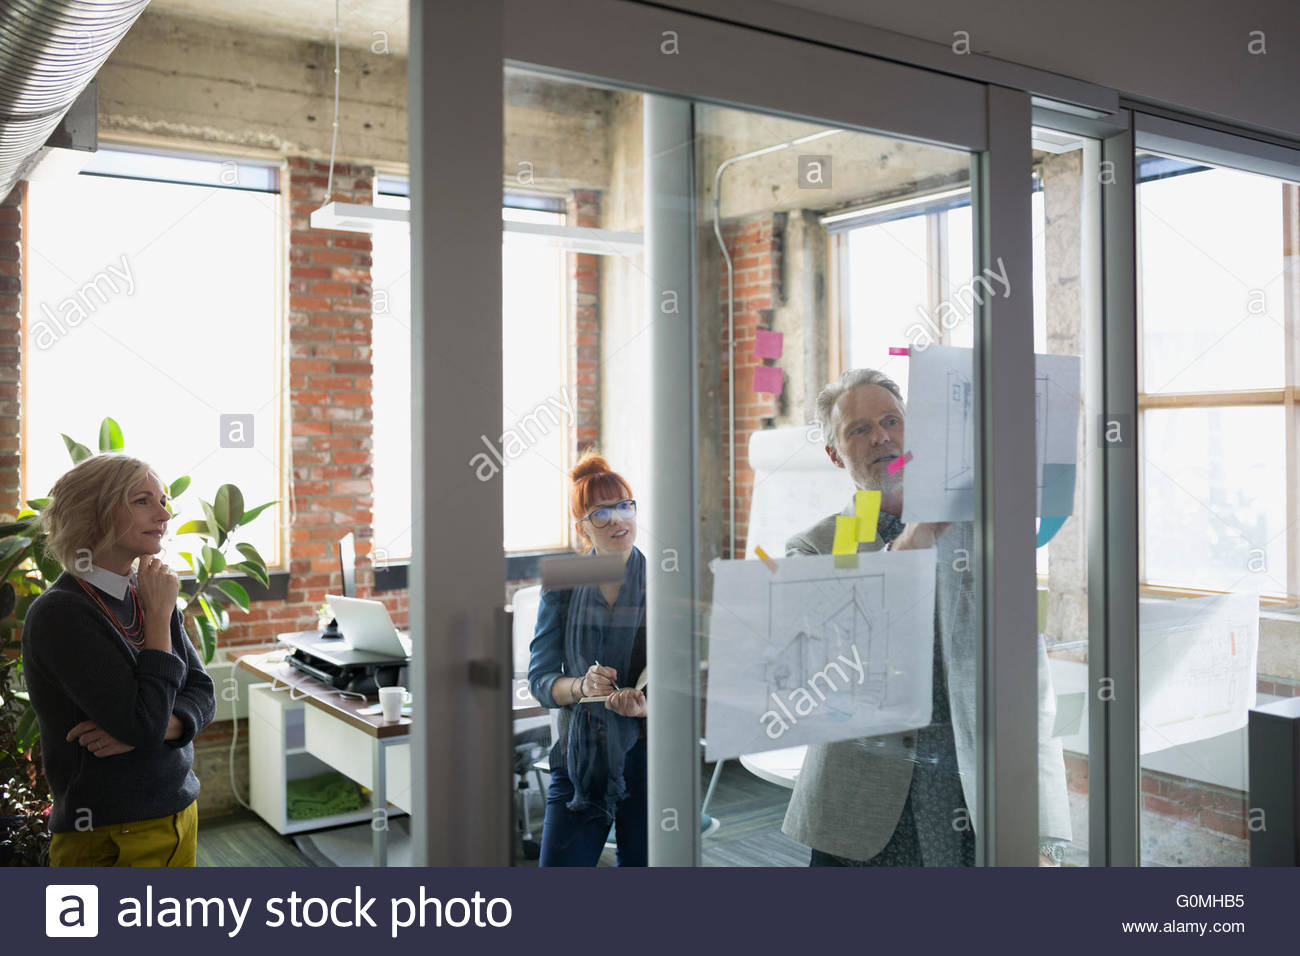 Architects discussing blueprints hanging on office glass - Stock Image